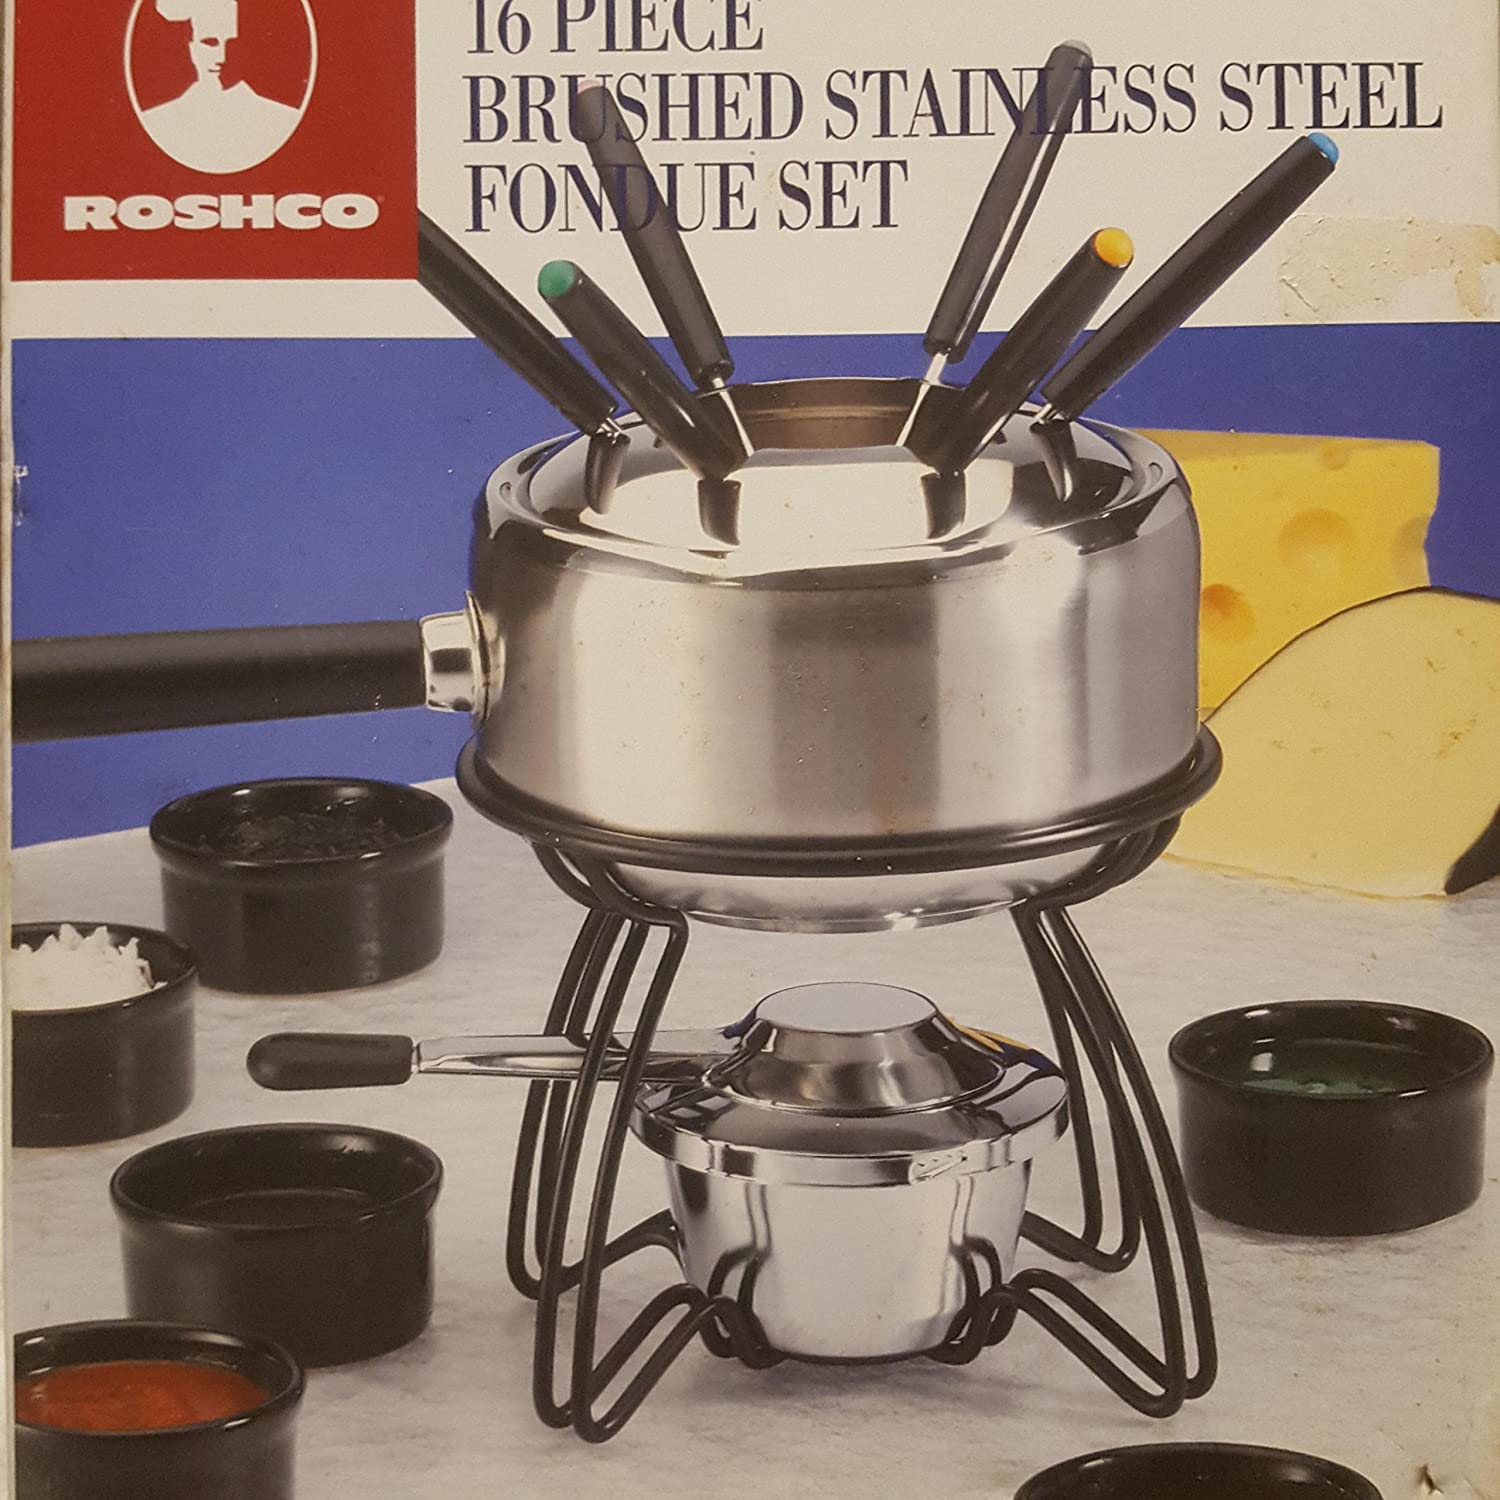 16 Piece Brushed Stainless Steel Fondue Set By Roshco ROSCHCO